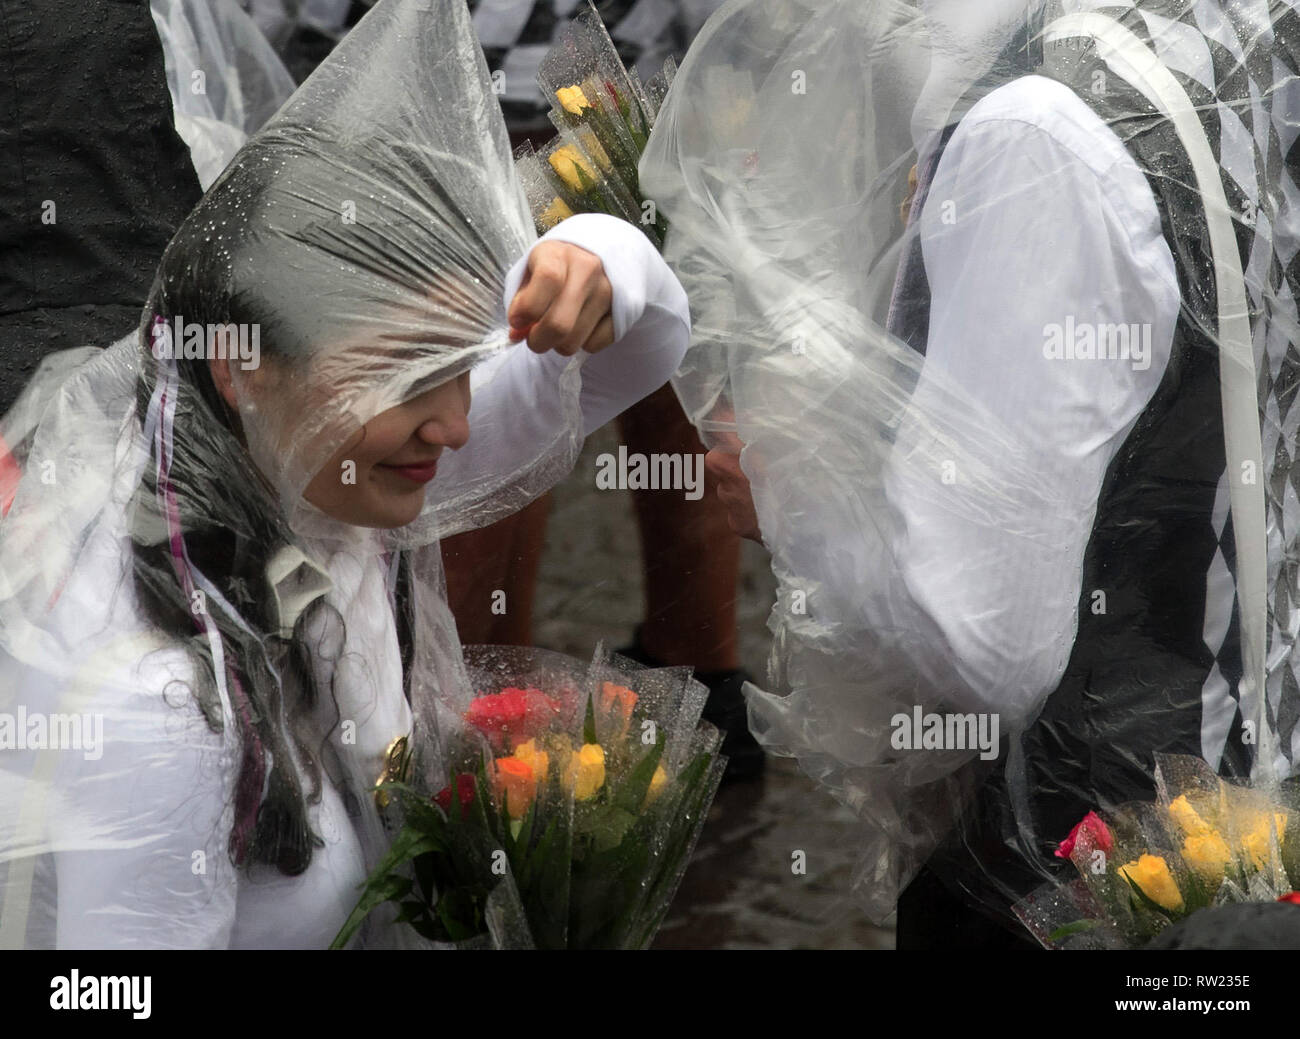 Cologne, Germany. 04th Mar, 2019. Cologne, Germany. 04th Mar, 2019.  Carnivalists protect themselves with transparent rain ponchos from the rain during the Rose Monday procession. With the Rose Monday processions, the Rhineland street carnival reaches its climax. Photo: Federico Gambarini/dpa Credit: dpa picture alliance/Alamy Live News - Stock Image